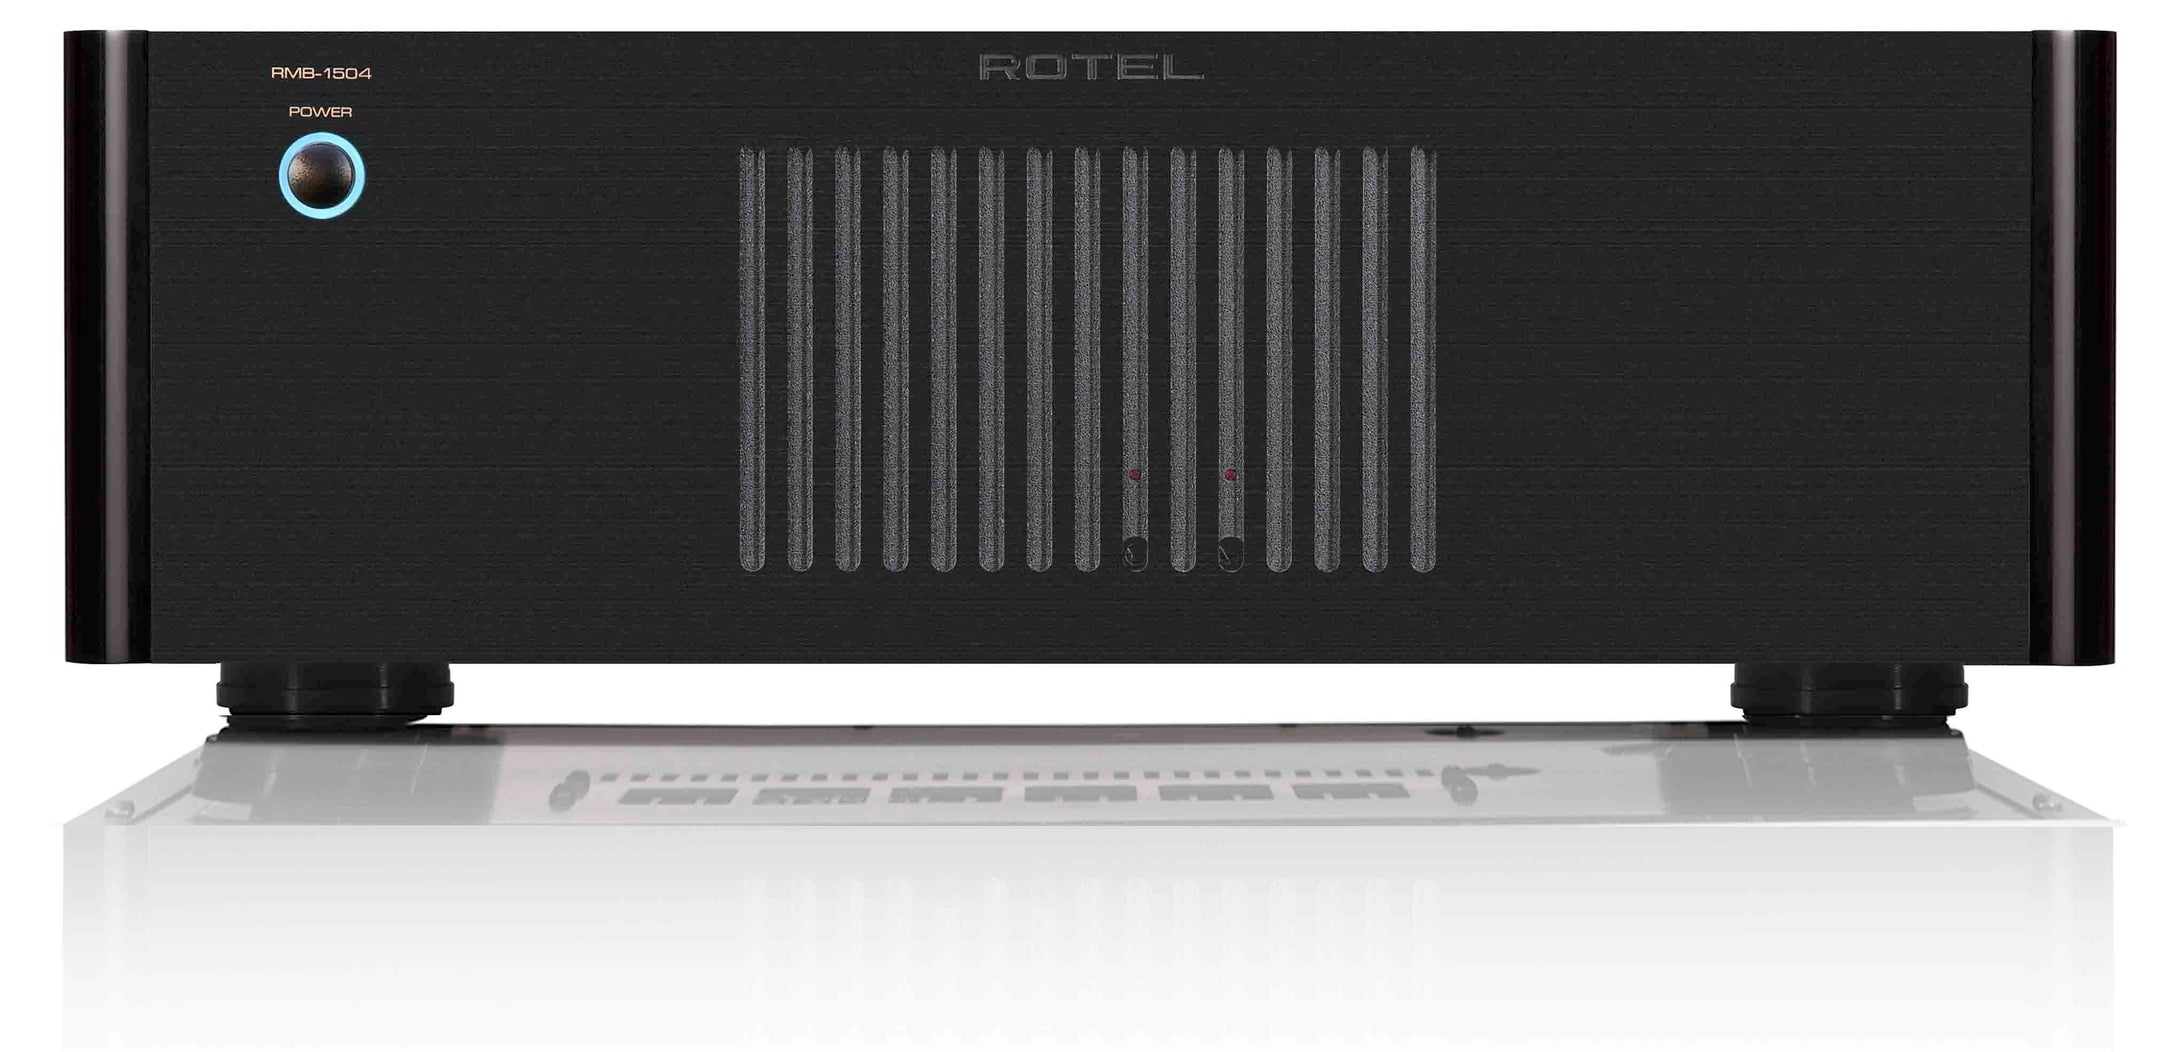 ROTEL RMB-1504 4-CHANNEL POWER AMPLIFIER